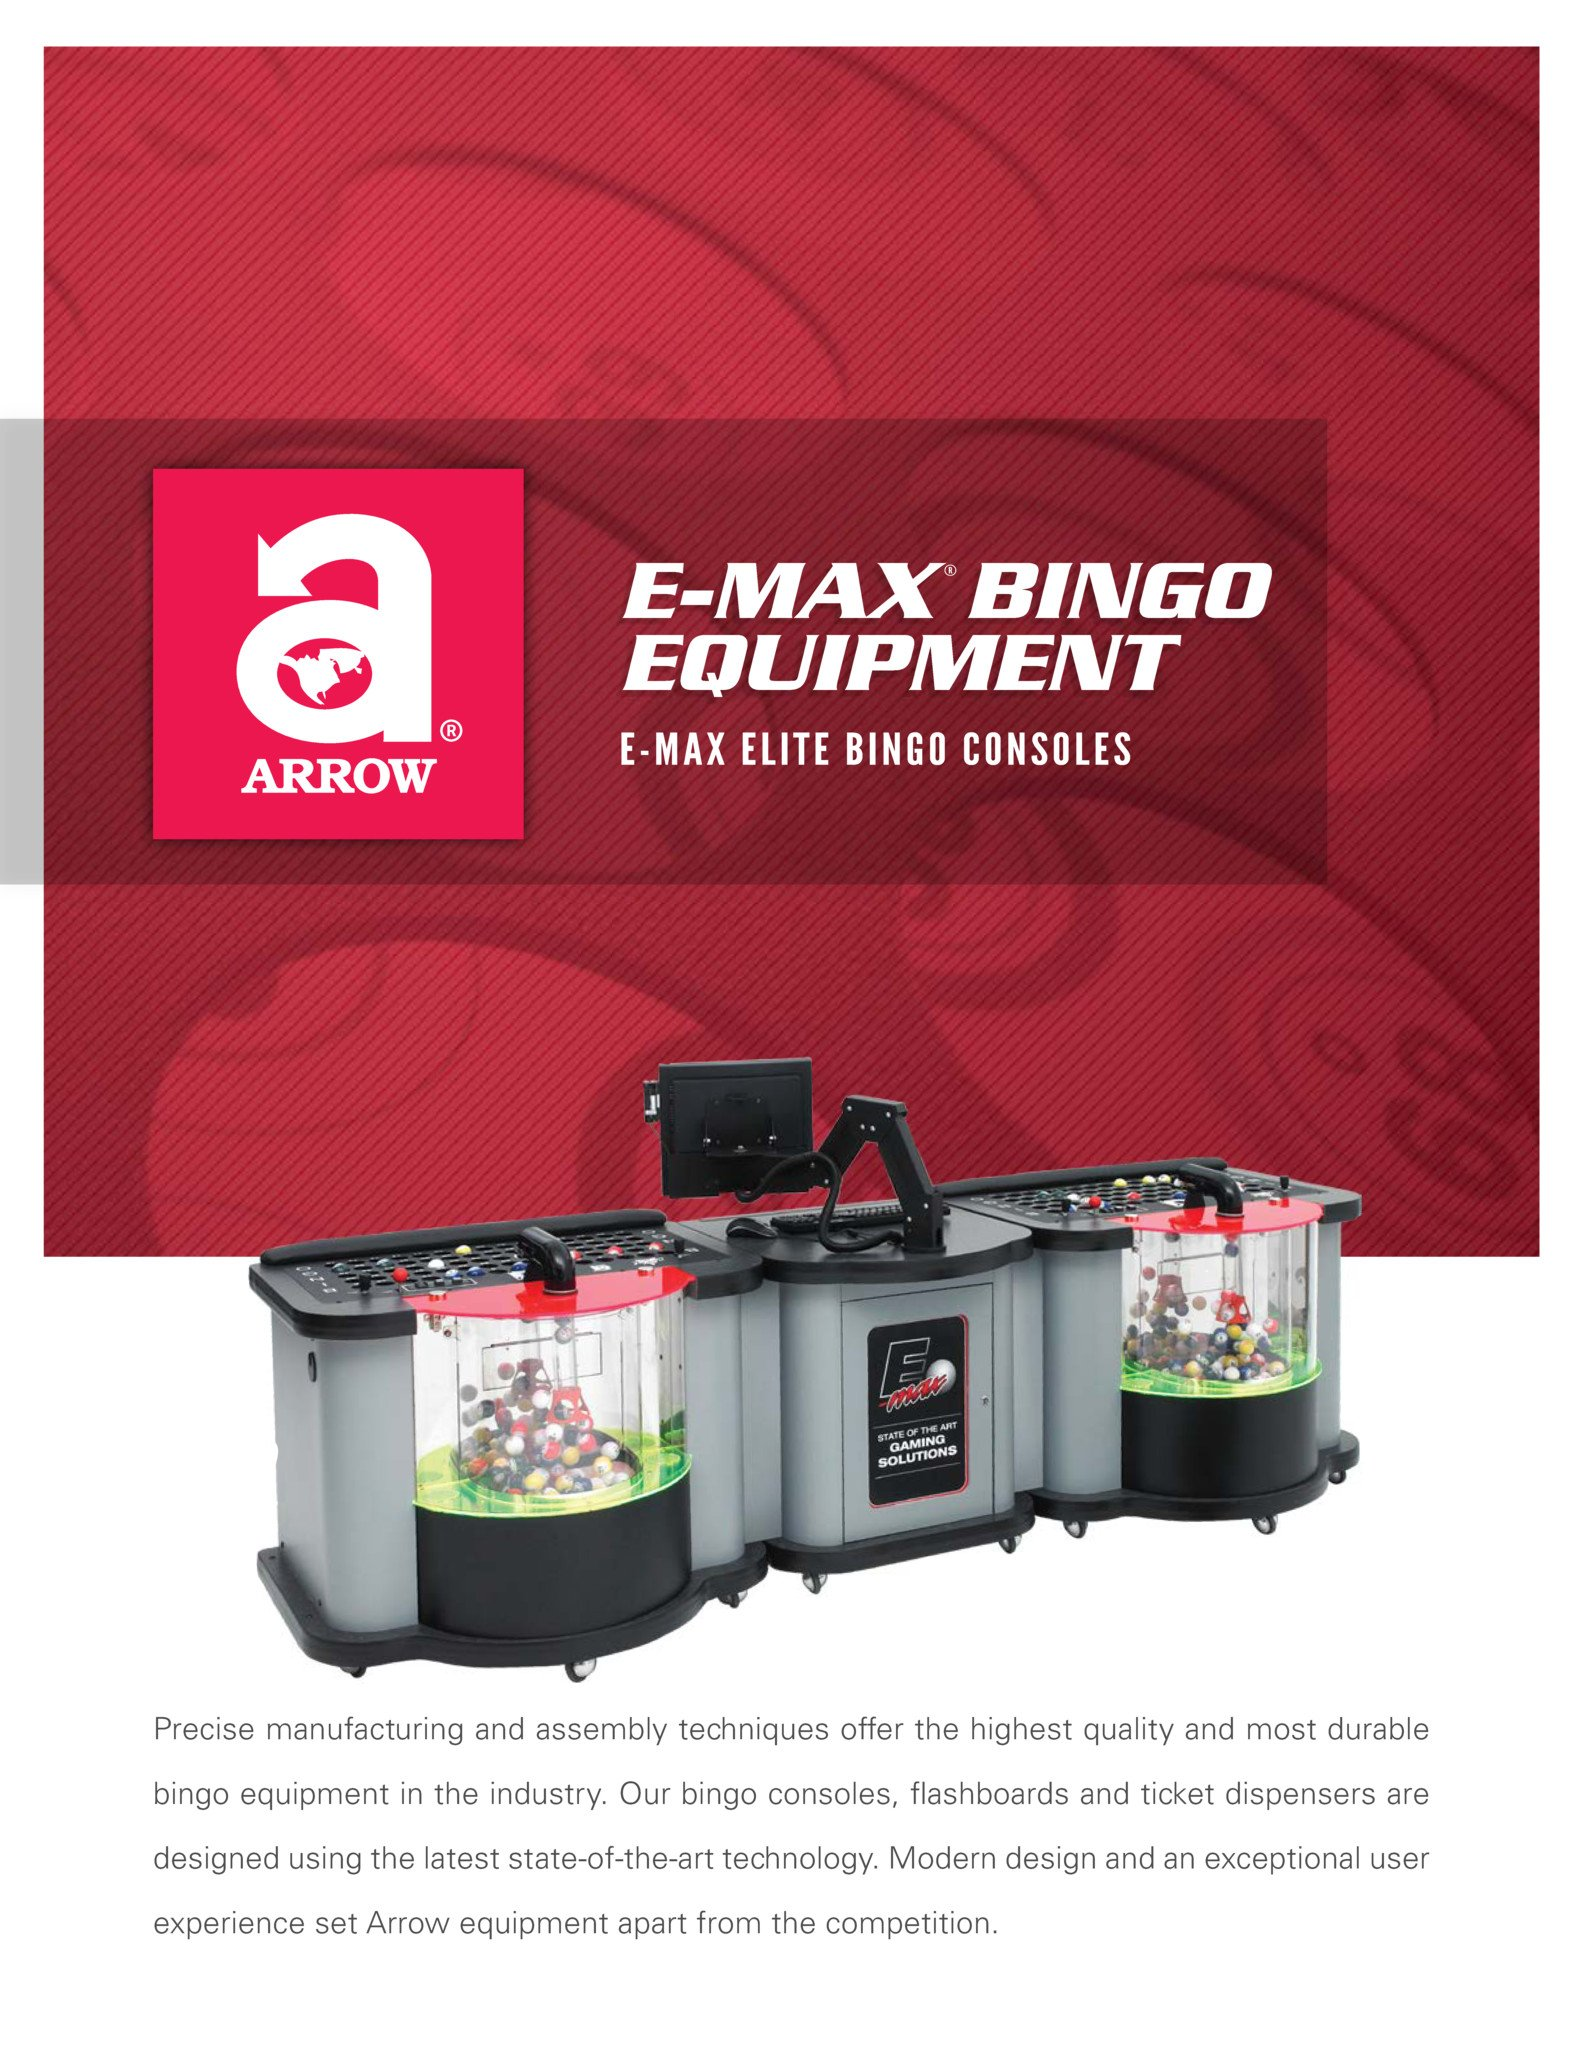 E-max Elite Bingo Console Flyer Promotional Materials/Equipment Flyers & Brochures